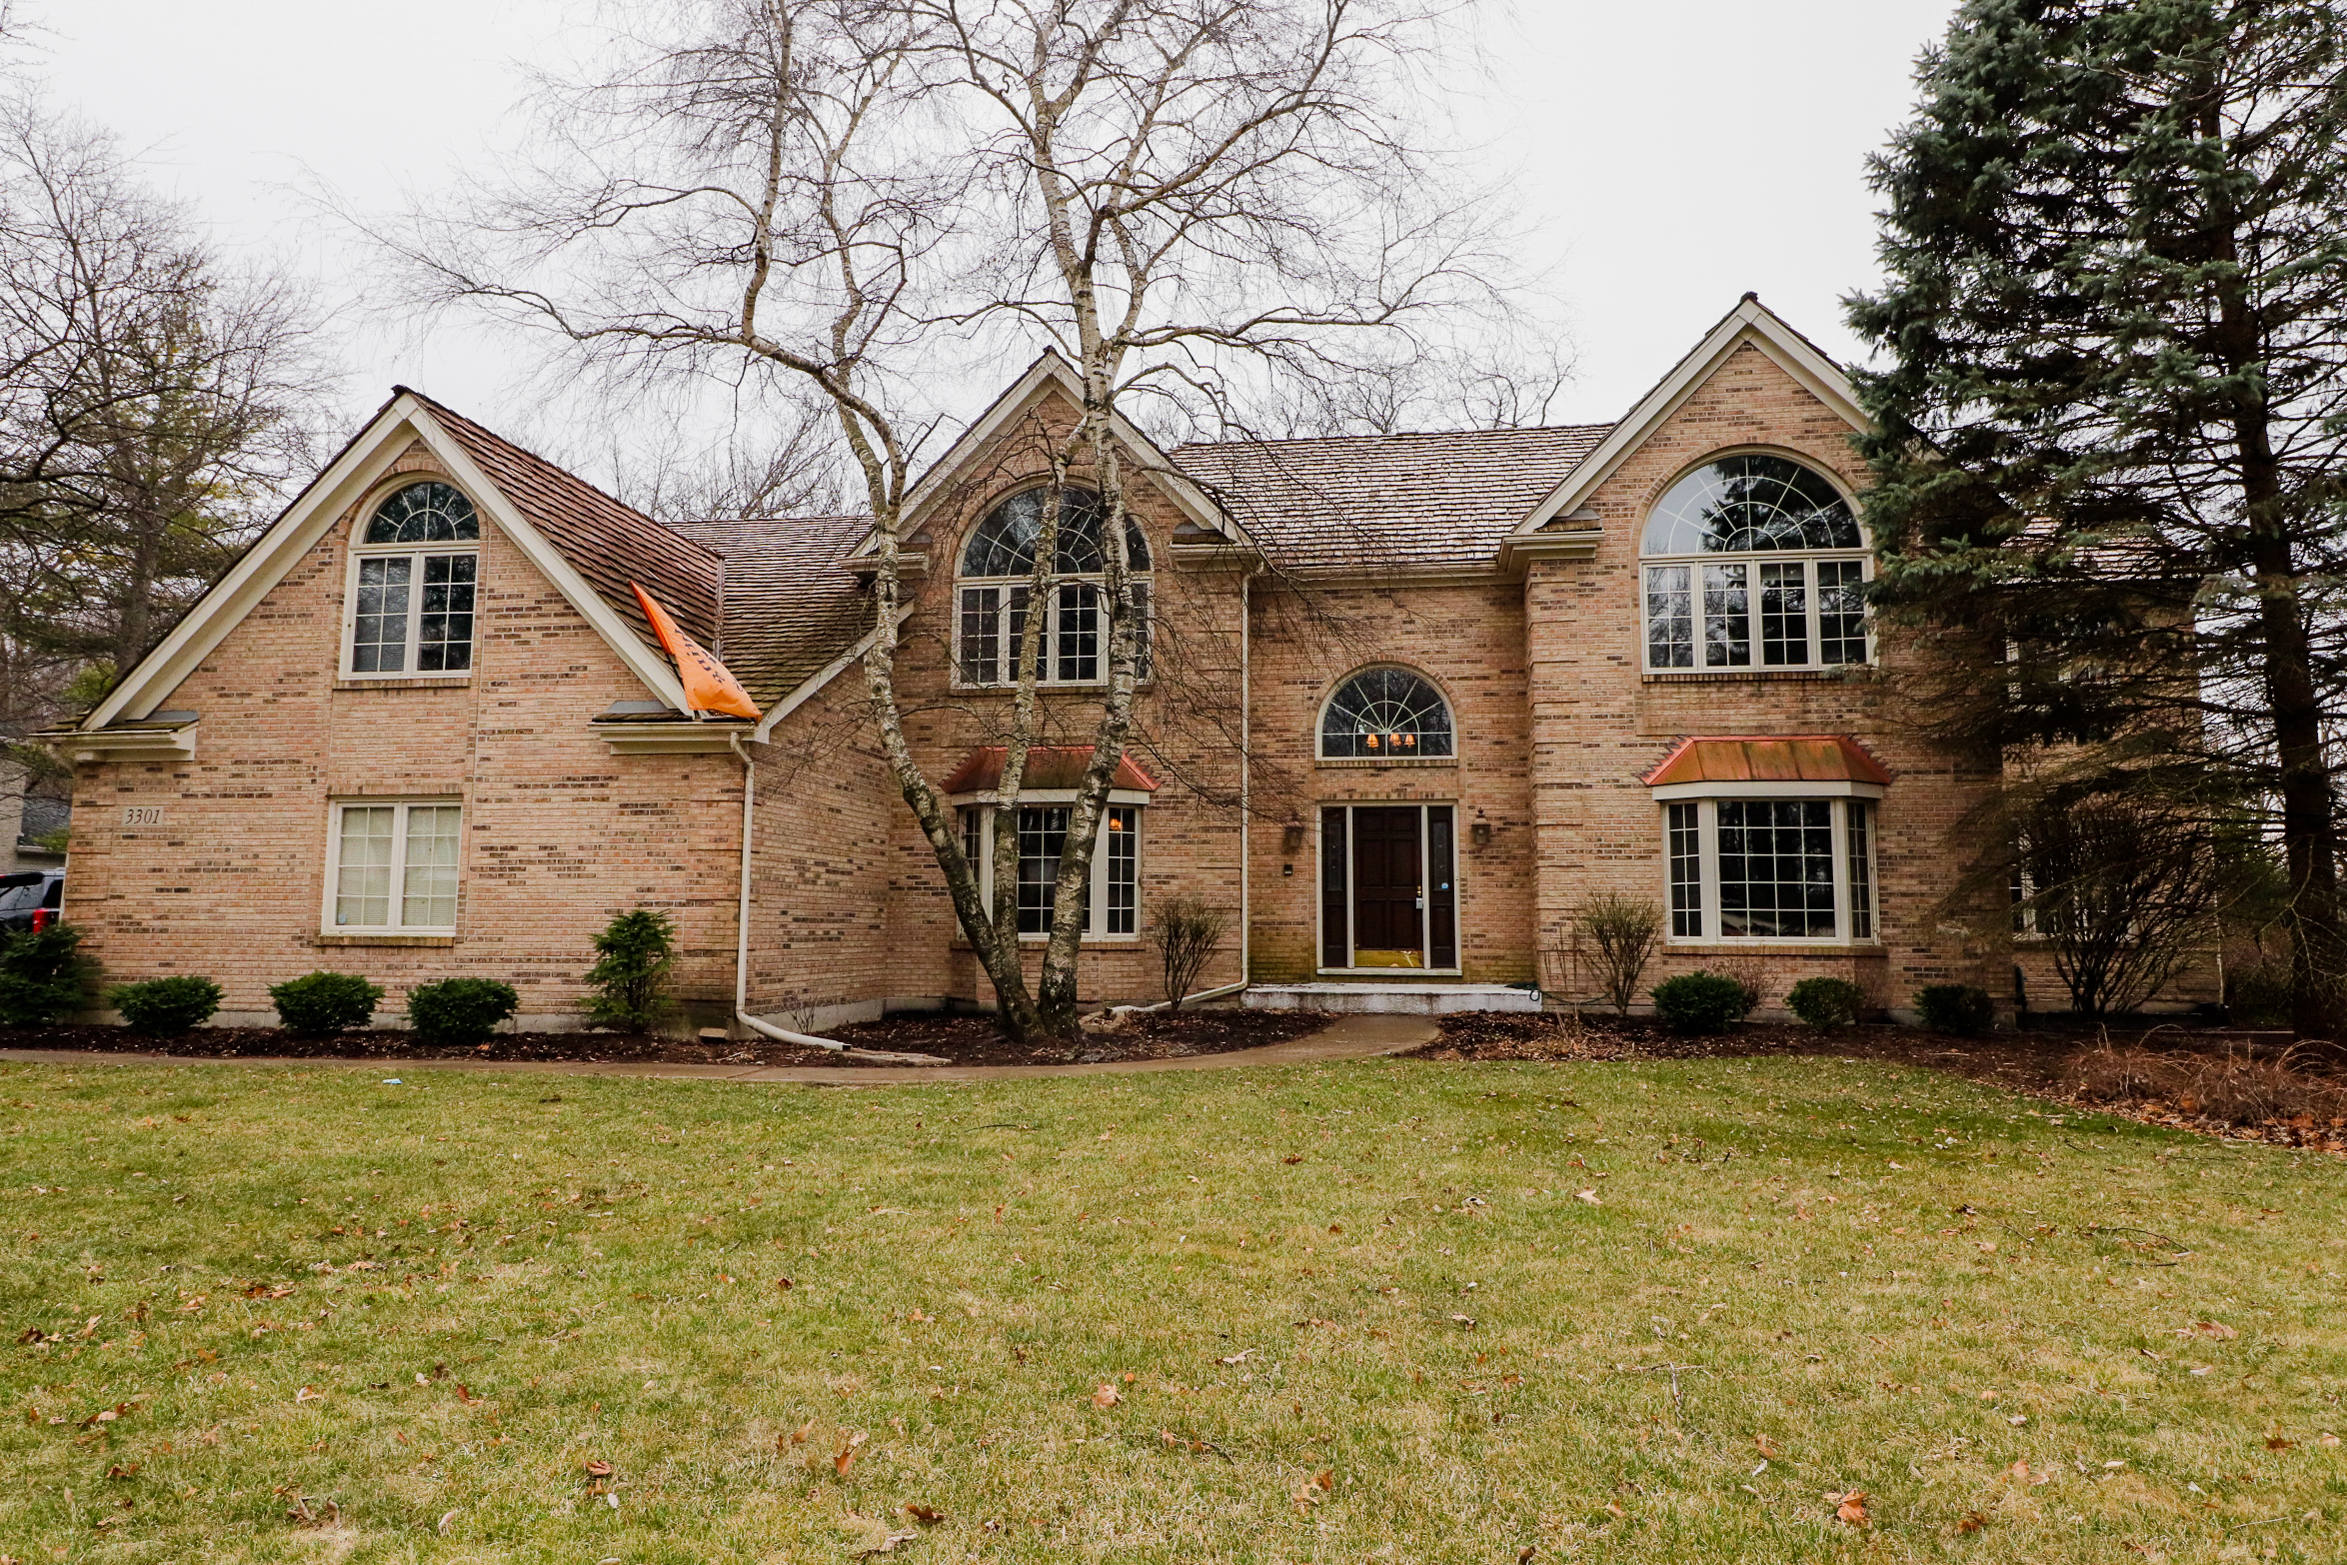 Photo of 3301 Royal Fox Drive, St. Charles, IL, 60174